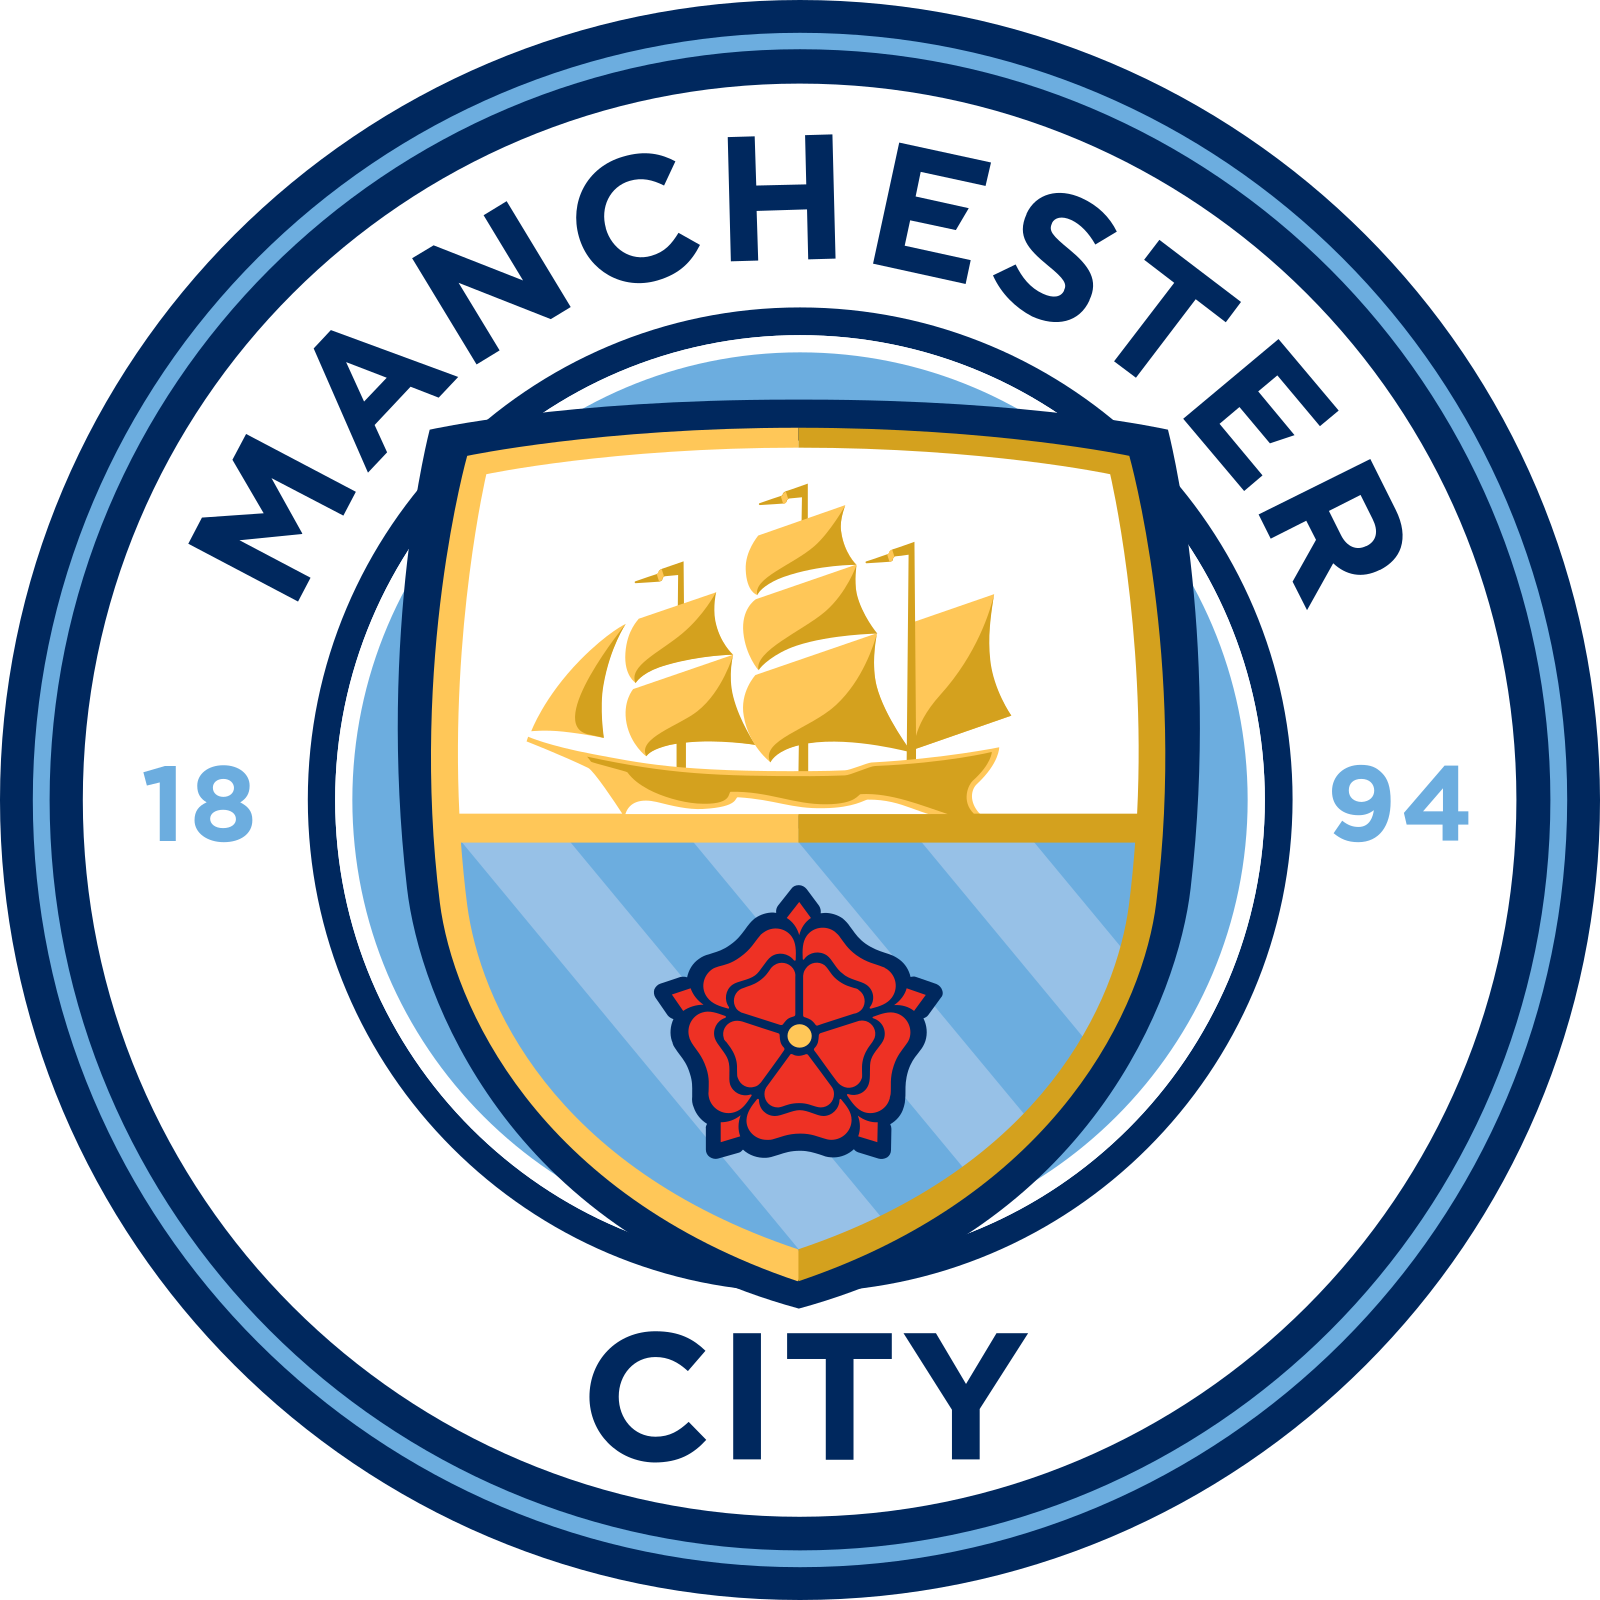 manchester city fc logo escudo badge 2 - Manchester City Logo - Manchester City Football Club Escudo